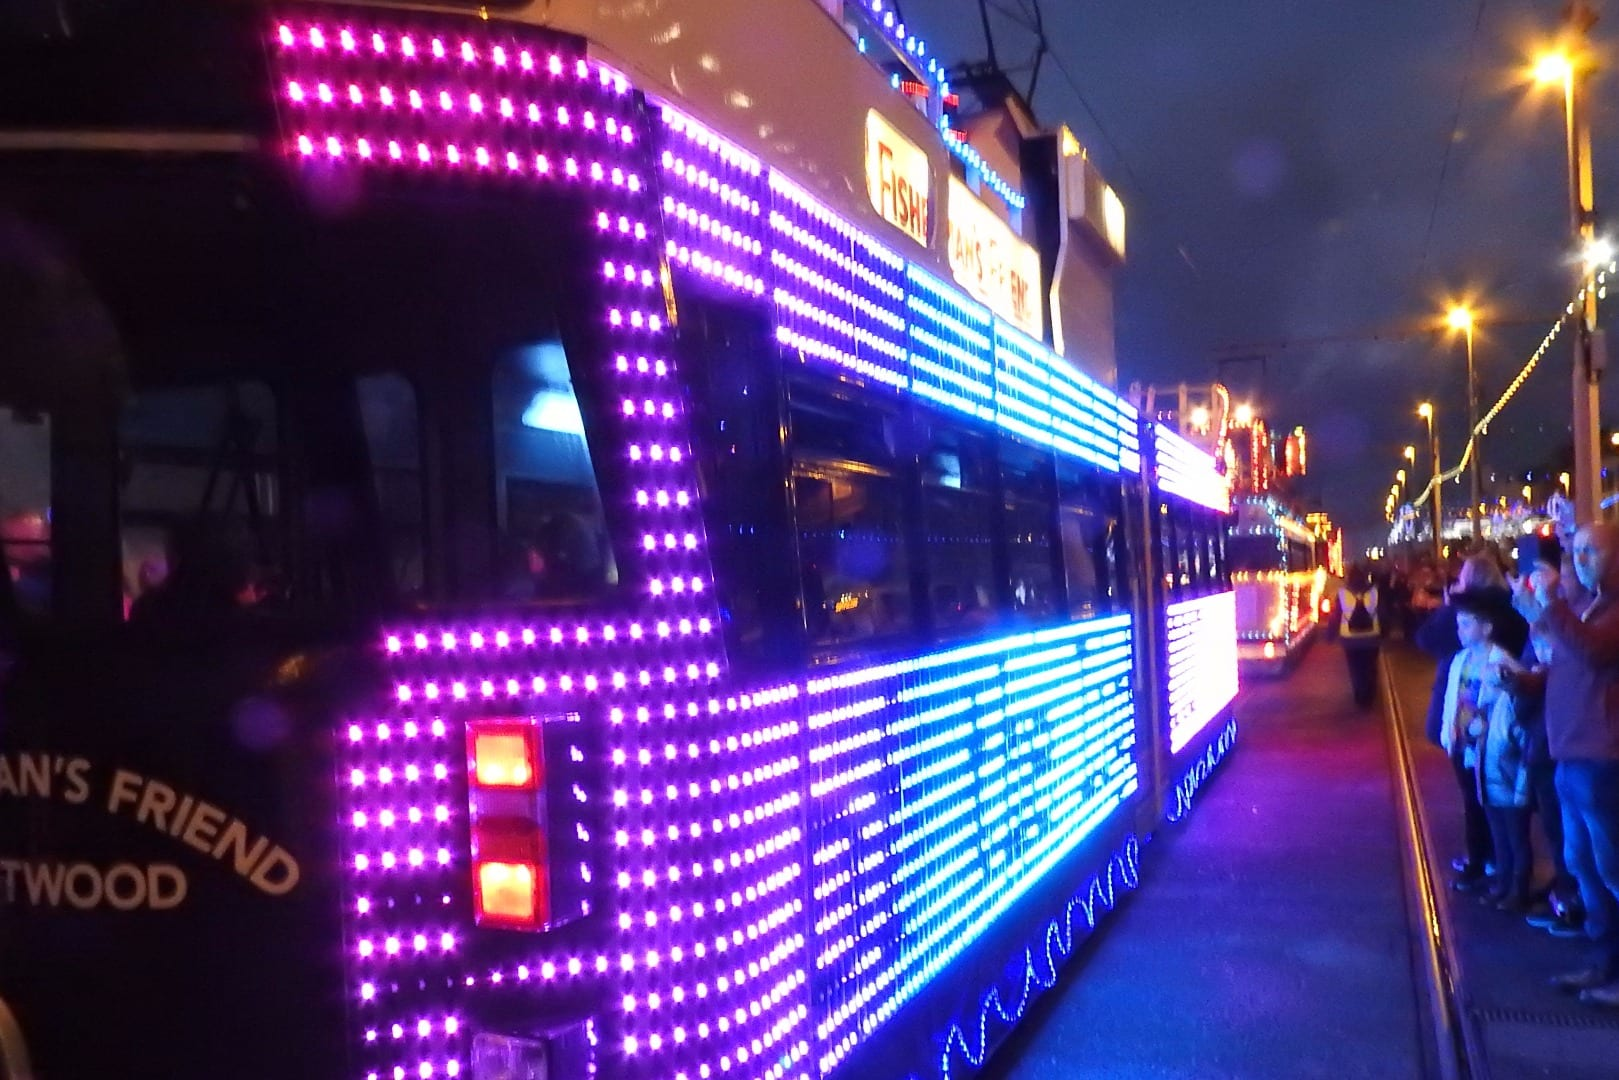 Illuminated Tram Parade, photo Barrie C Woods